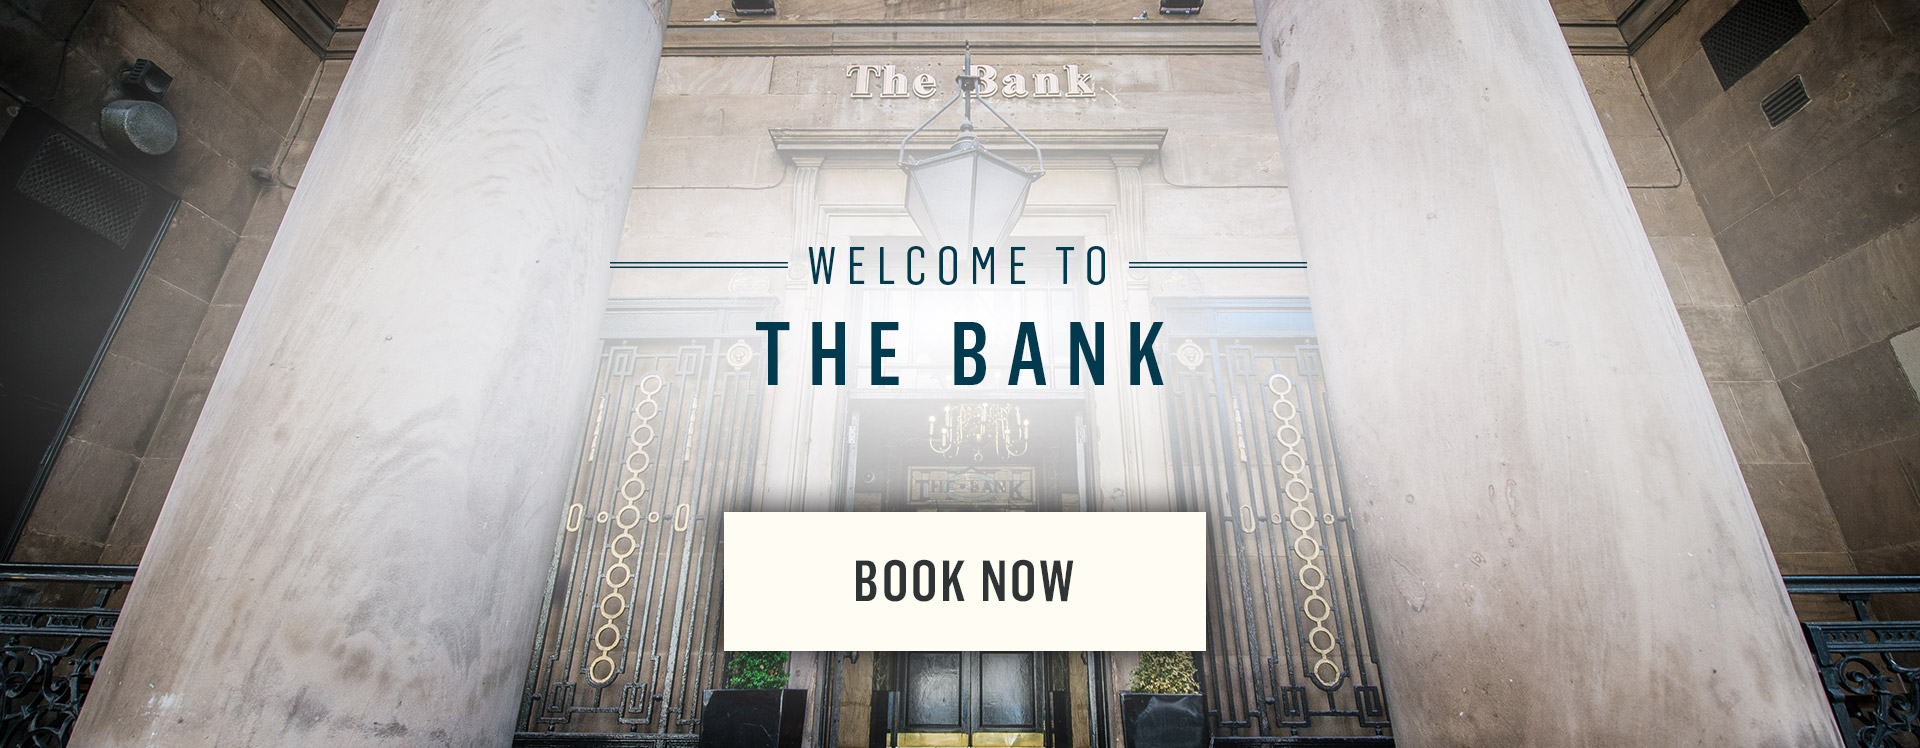 Welcome to The Bank - Book Now